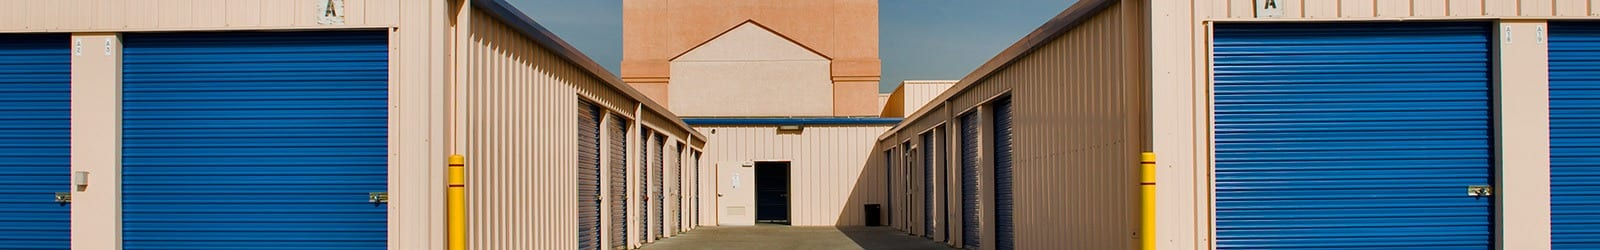 Warehouse Storage is available at Otay Mesa Self Storage.